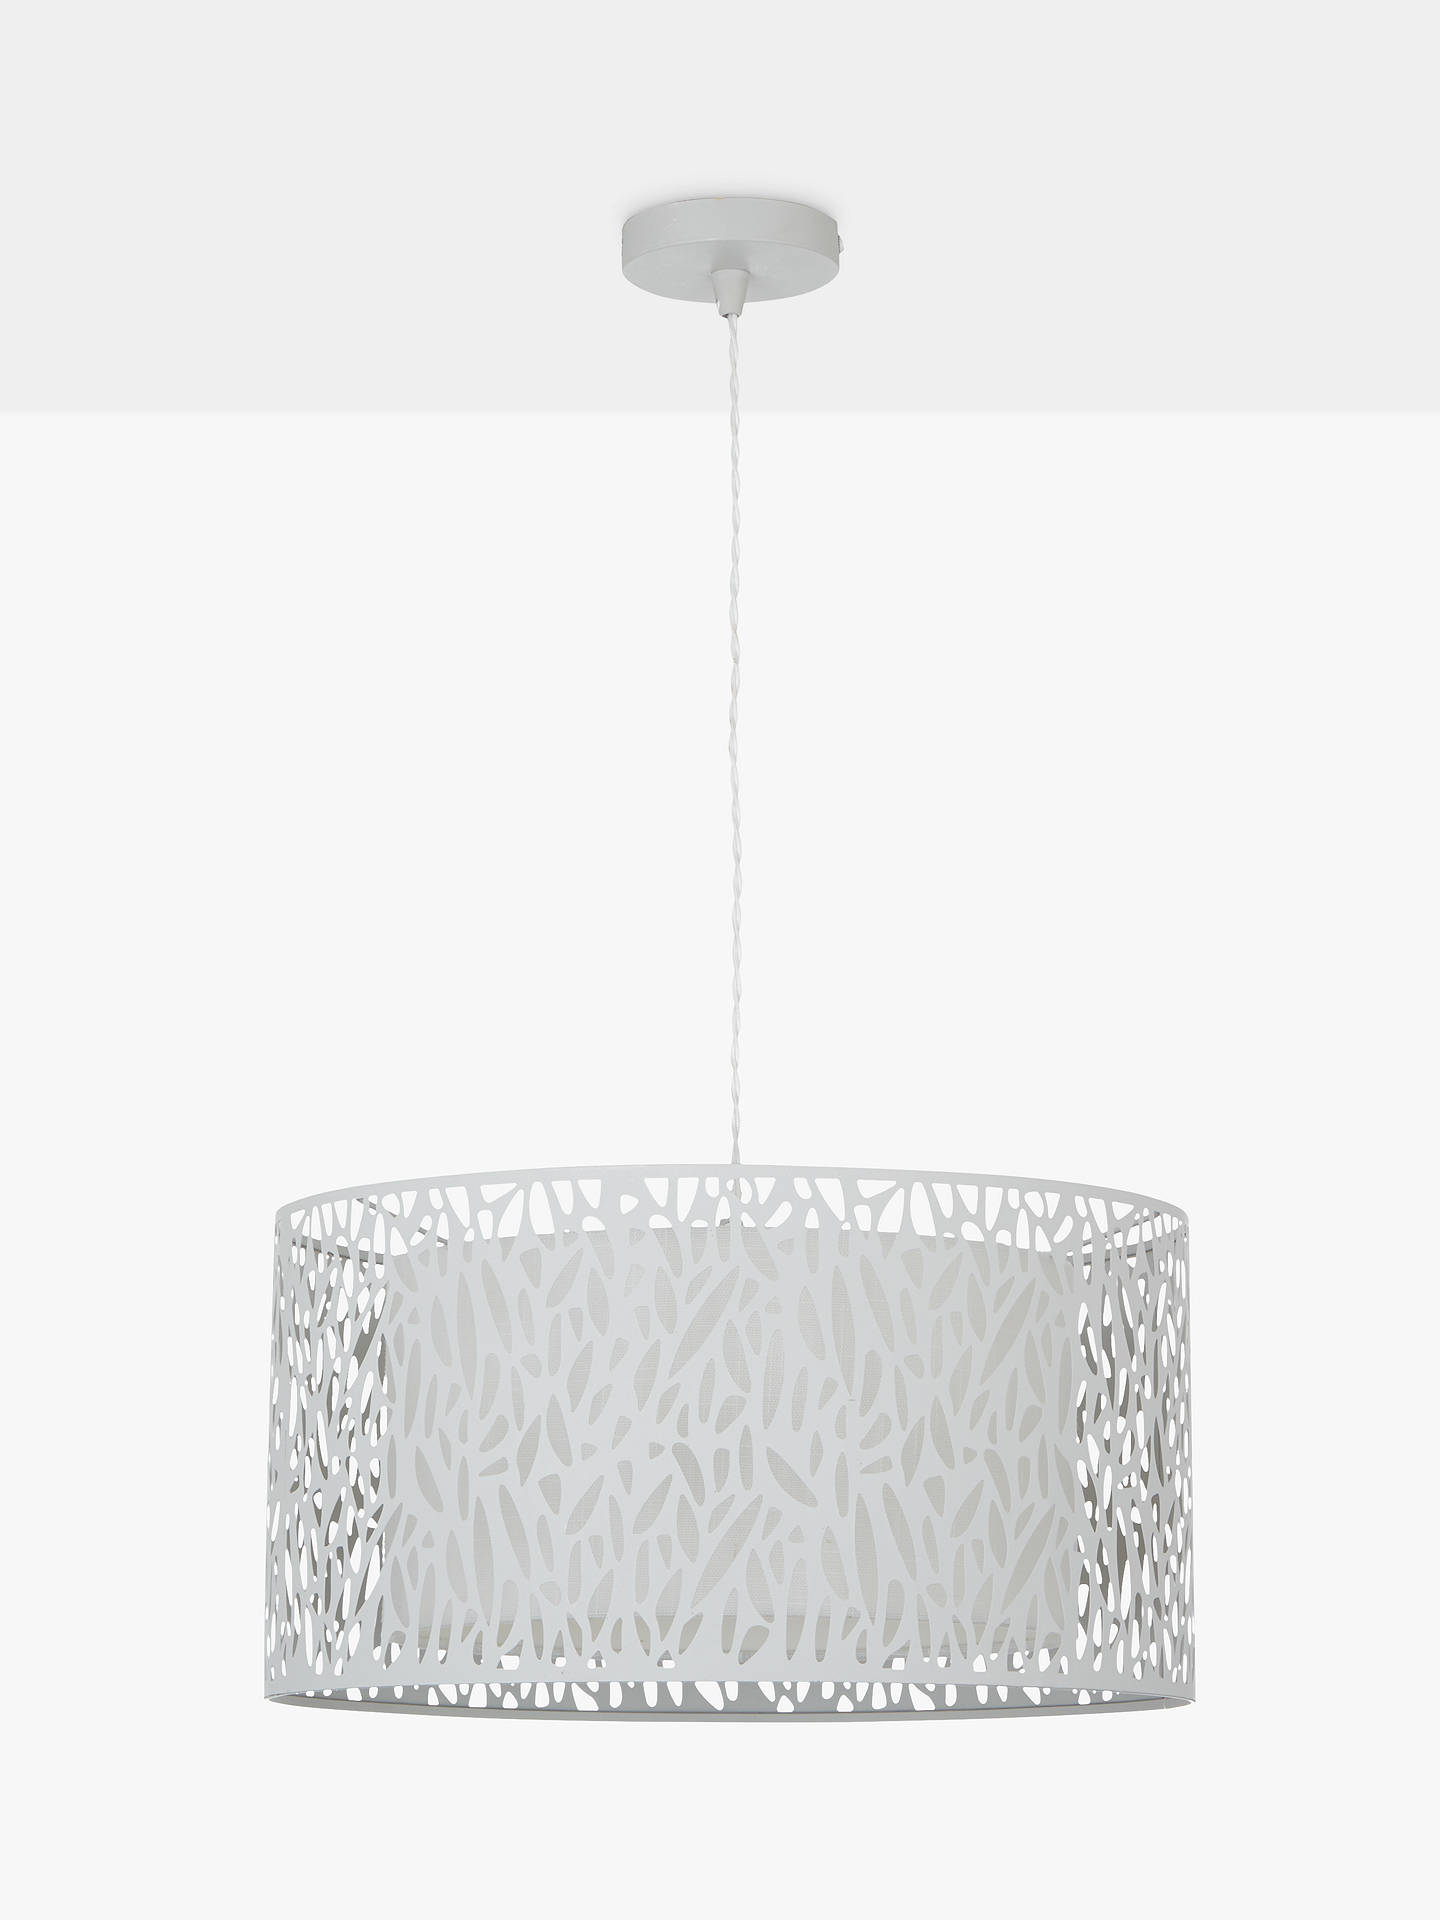 BuyJohn Lewis & Partners Meadow Fretwork Shade Ceiling Light, Grey/White Online at johnlewis.com